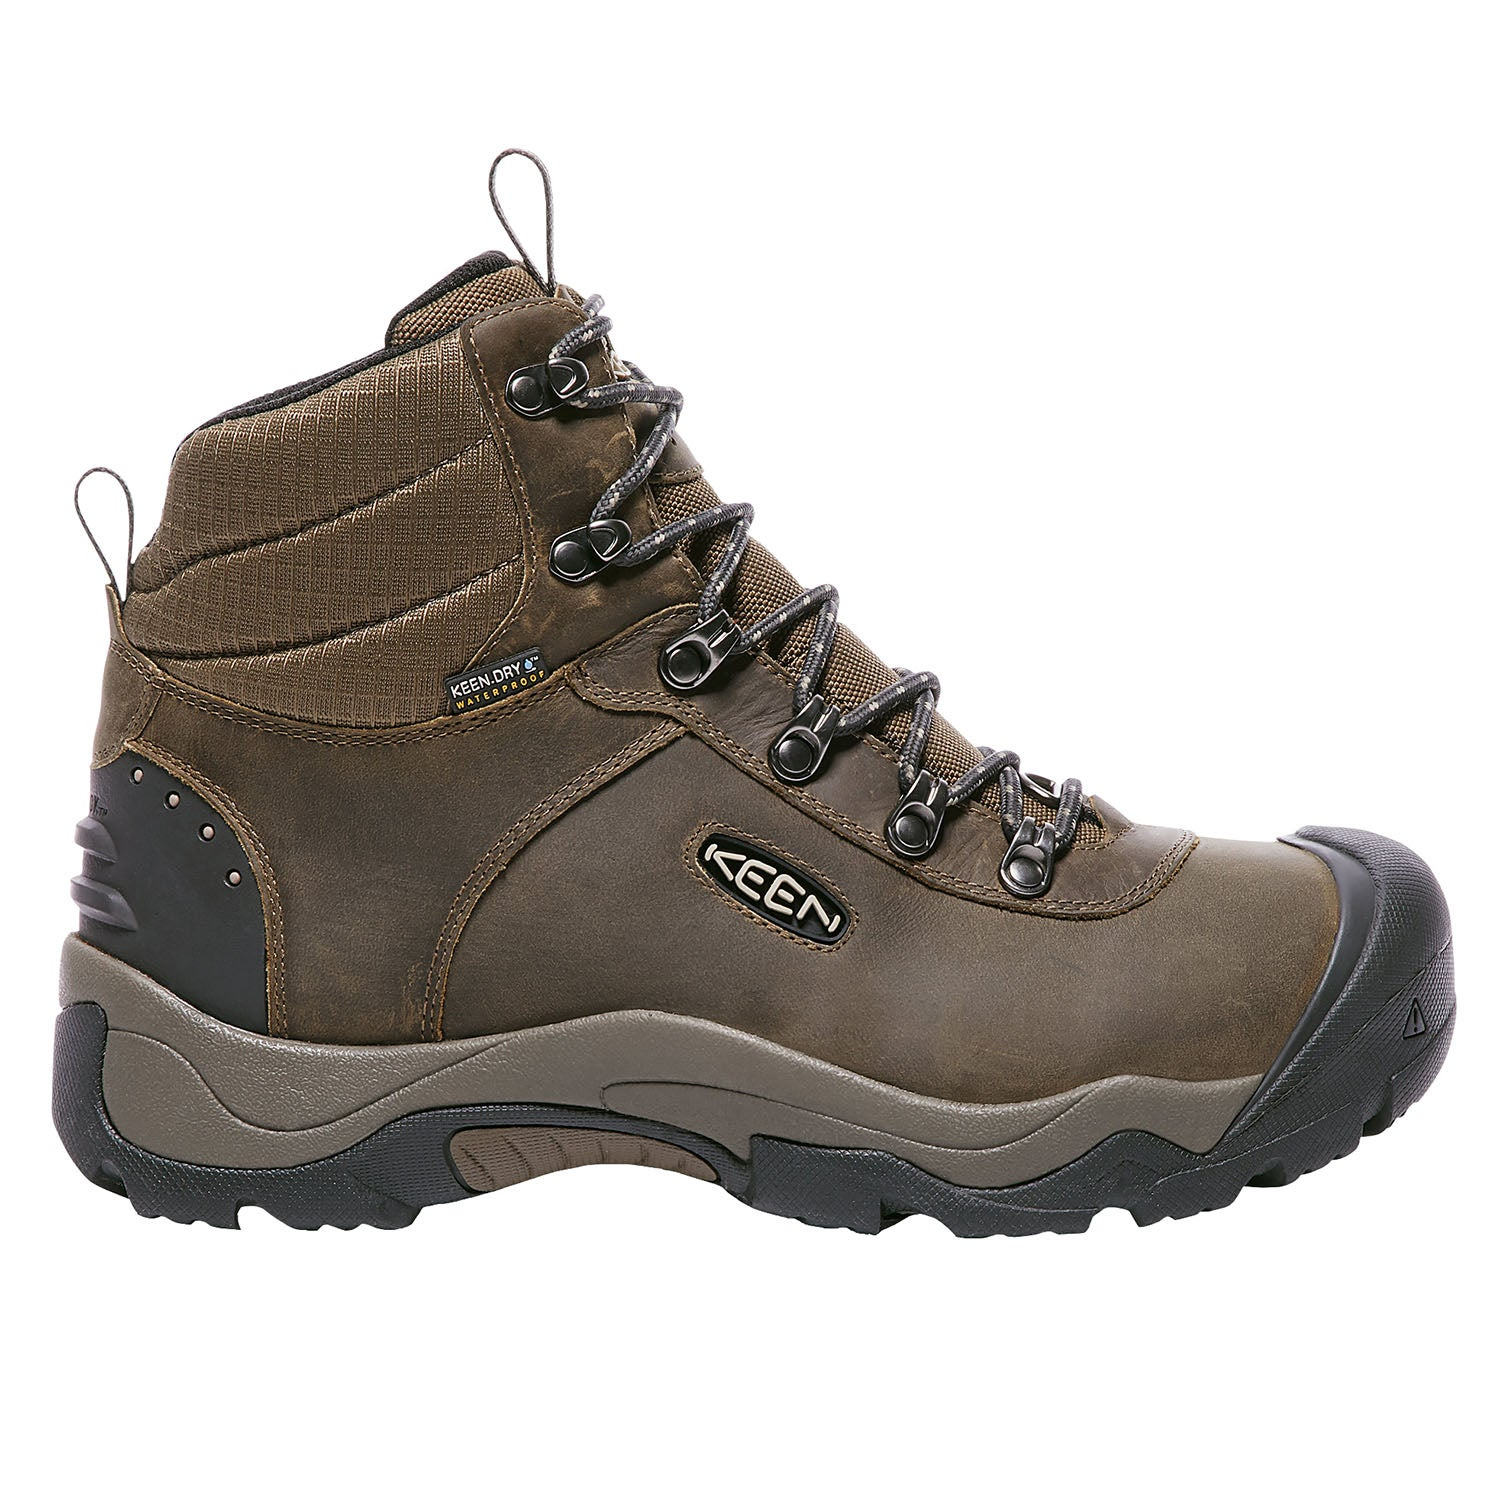 4e99dd17 Keen Revel Iii Buty trekkingowe available at Webtogs.com